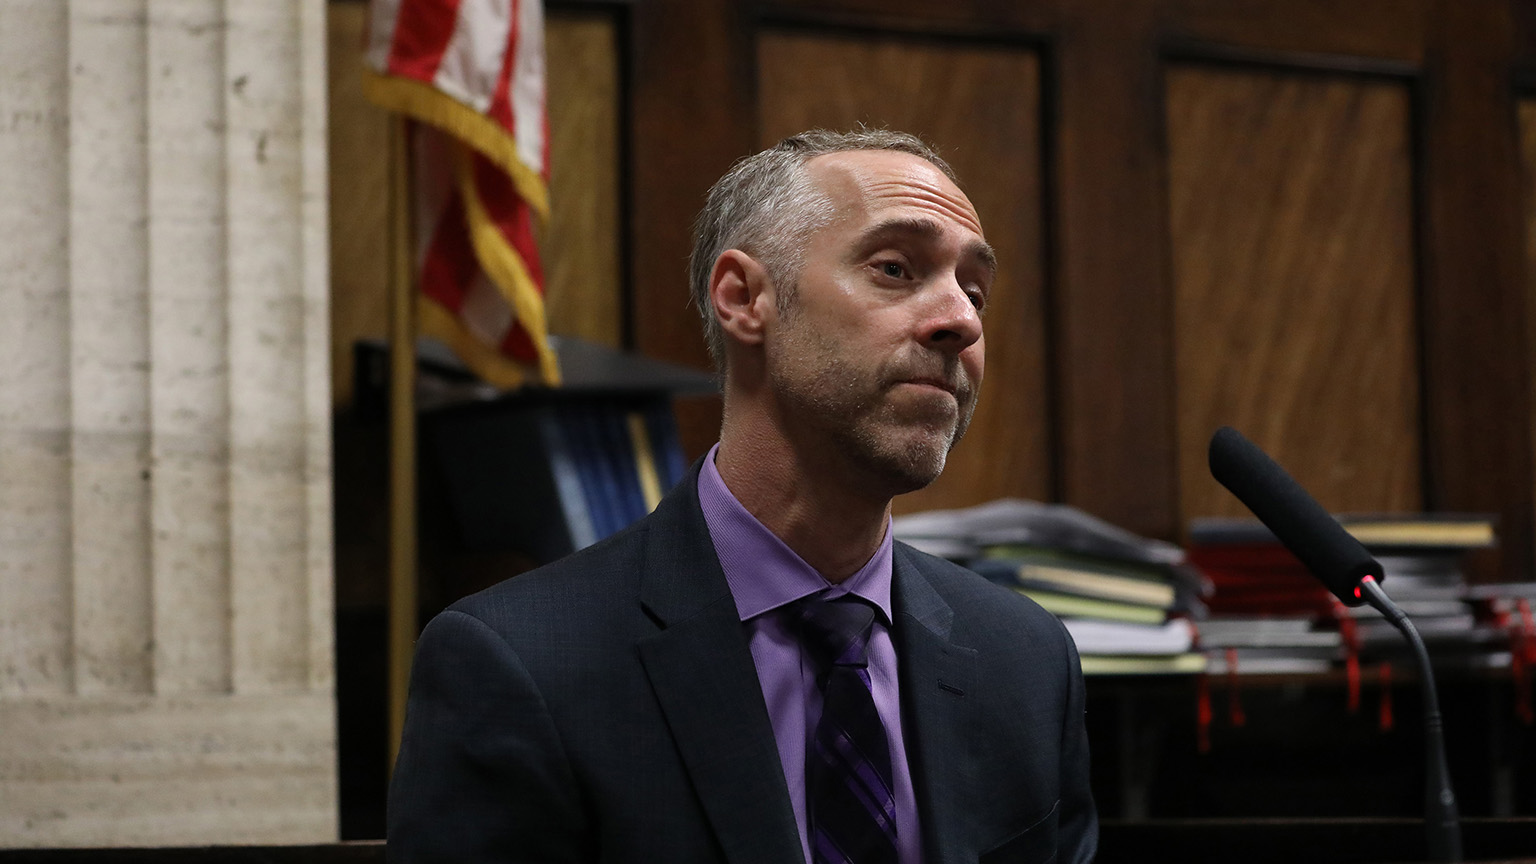 Witness Bryan Edelman, a trial consultant hired by the defense to conduct change-of-venue polls, answers questions at a hearing in the Jason Van Dyke case at Leighton Criminal Court in Chicago on April 18, 2018. (Nancy Stone / Chicago Tribune / Pool)